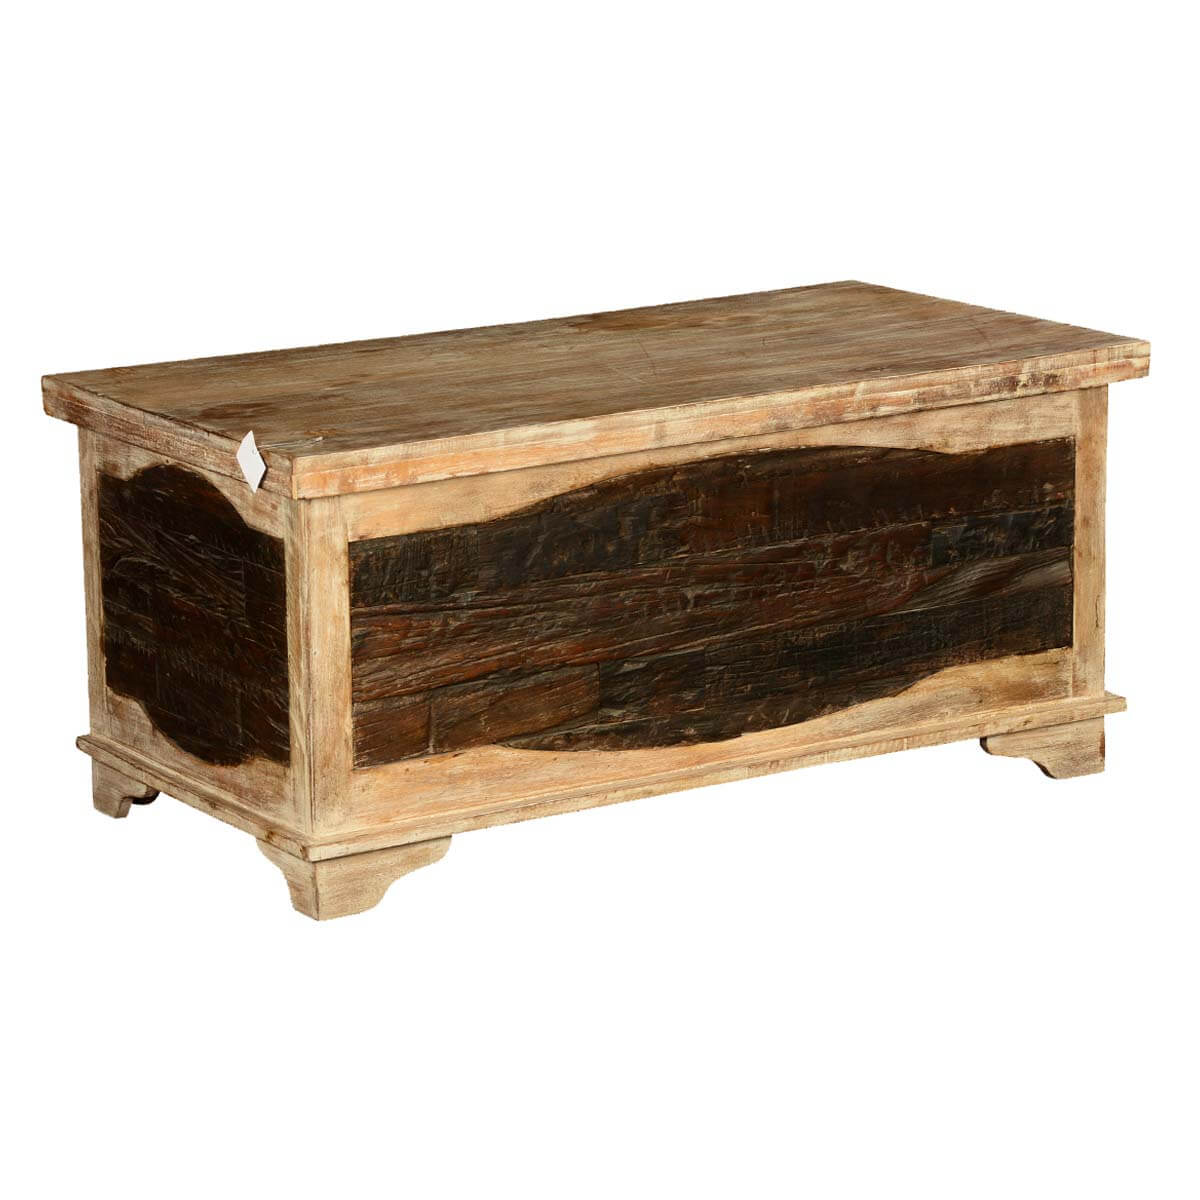 Rustic Log Cabin Railroad Ties Mango Wood Coffee Table Chest